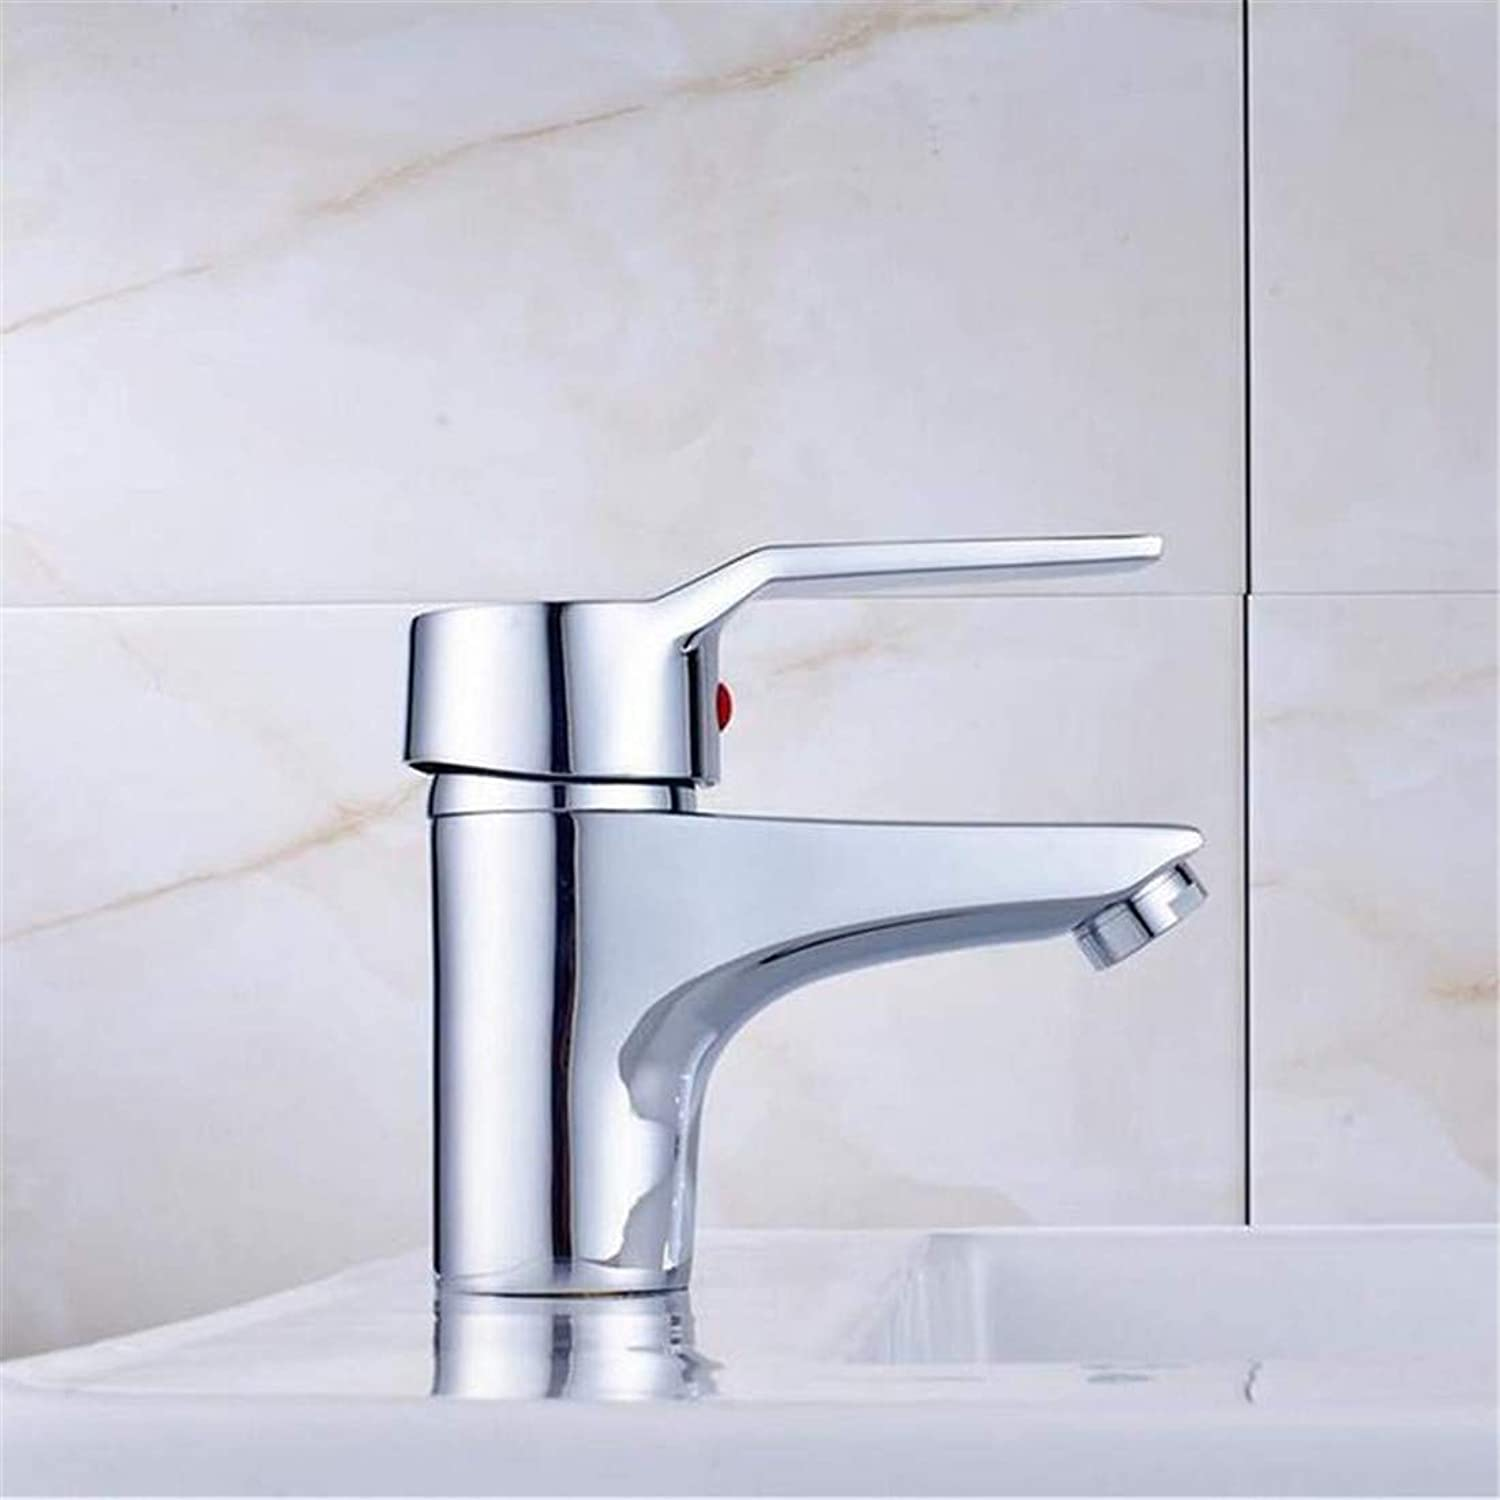 Faucet Modern Plated Kitchen Bathroom Faucet Faucets Basin Mixer Faucet Single Handle with Hot and Cold Water Bathroom Mixer Taps